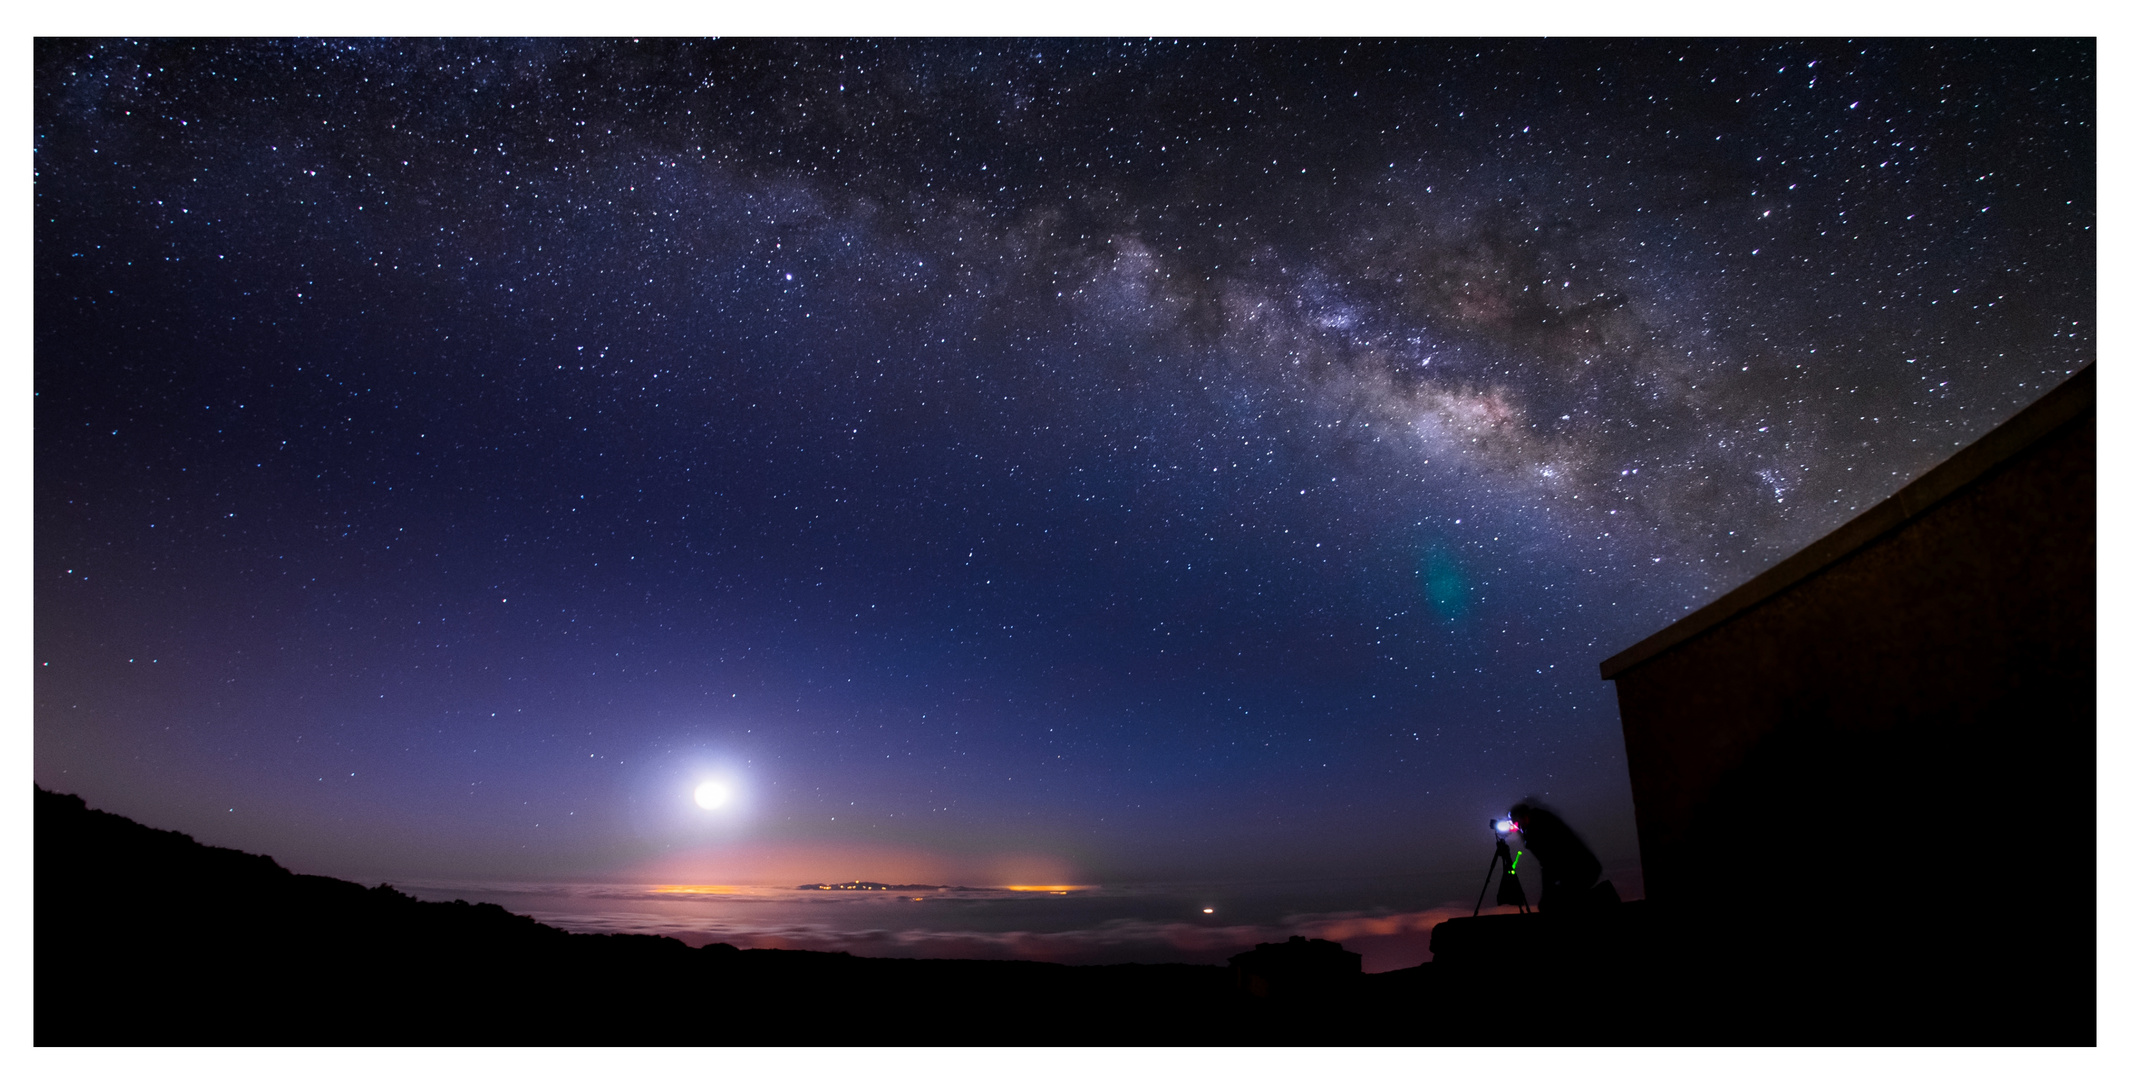 Moonrise under the Milky Way